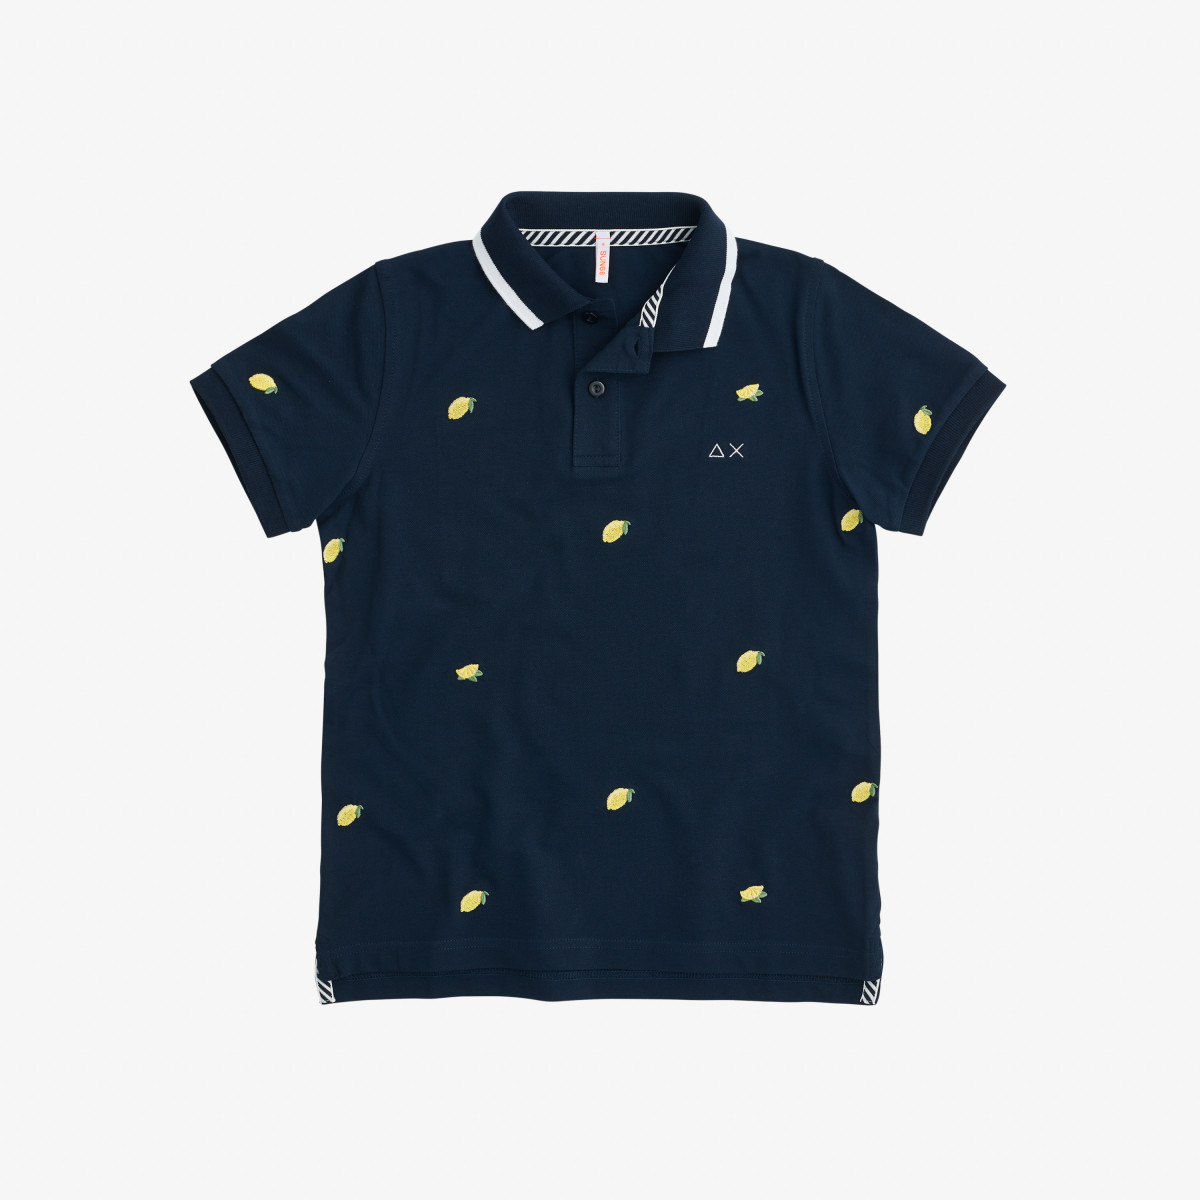 BOY'S POLO FULL EMBRODERY EL. NAVY BLUE